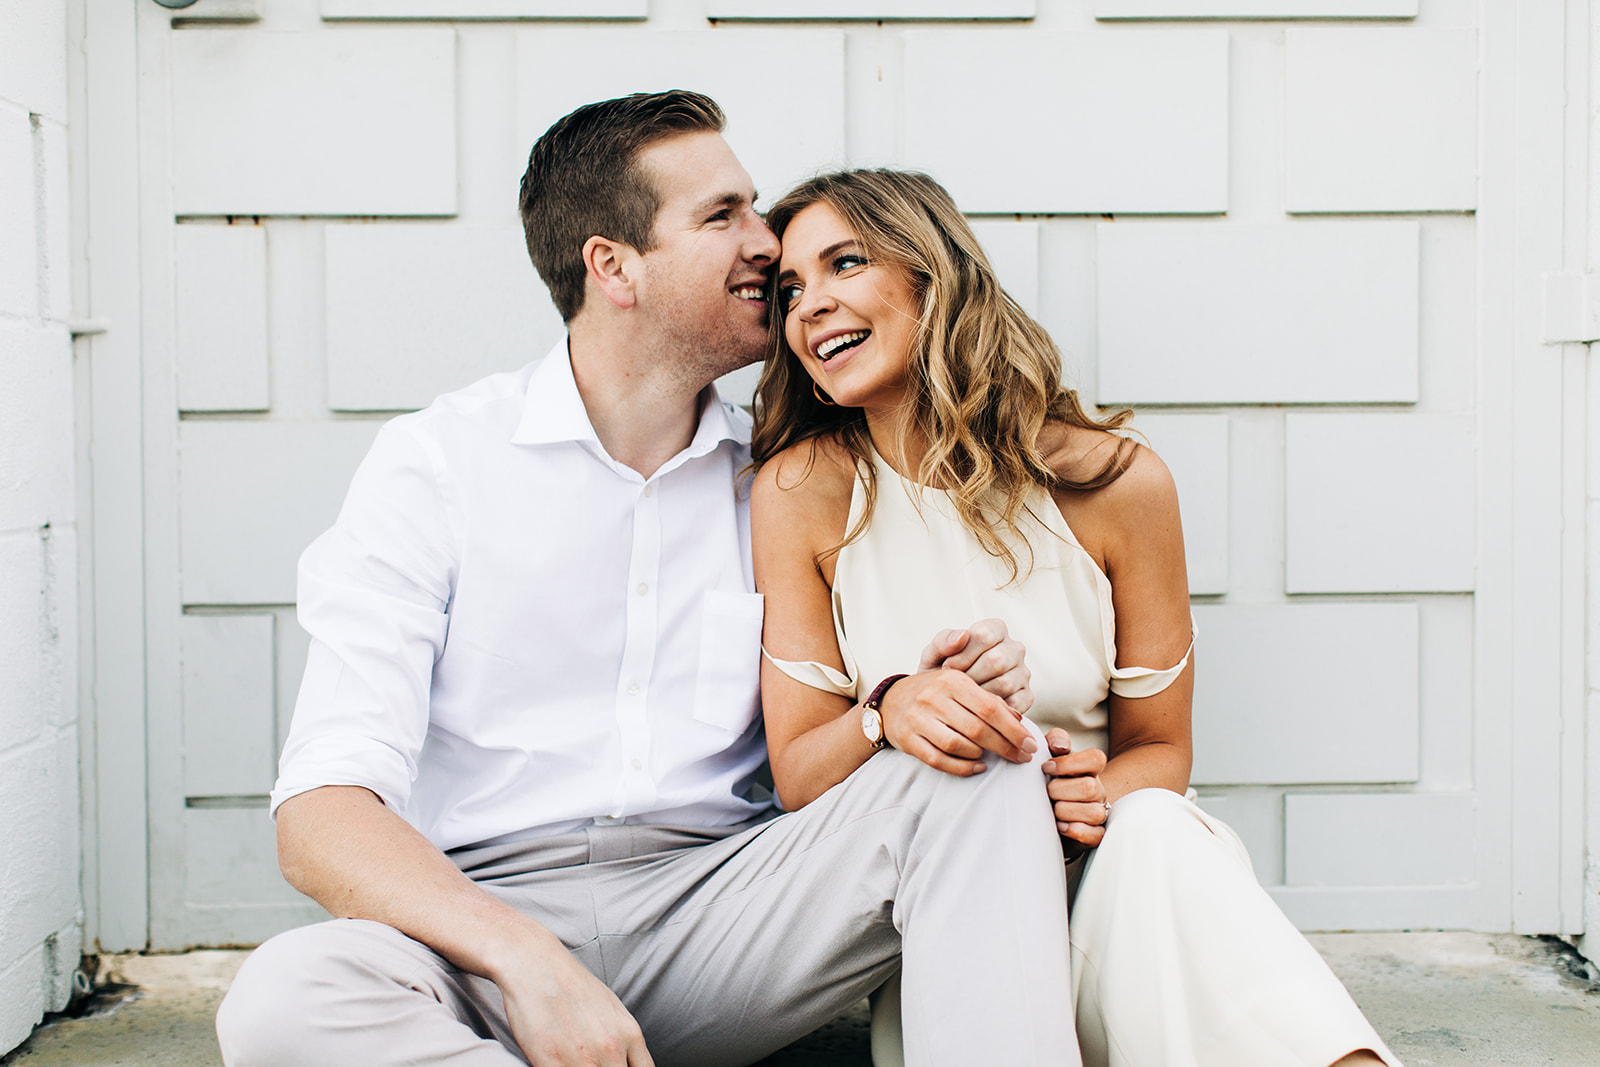 Paulina-Drew_Palm-Springs-Engagement-Photos_Clarisse-Rae_Southern-California-Wedding-Photographer19.jpg